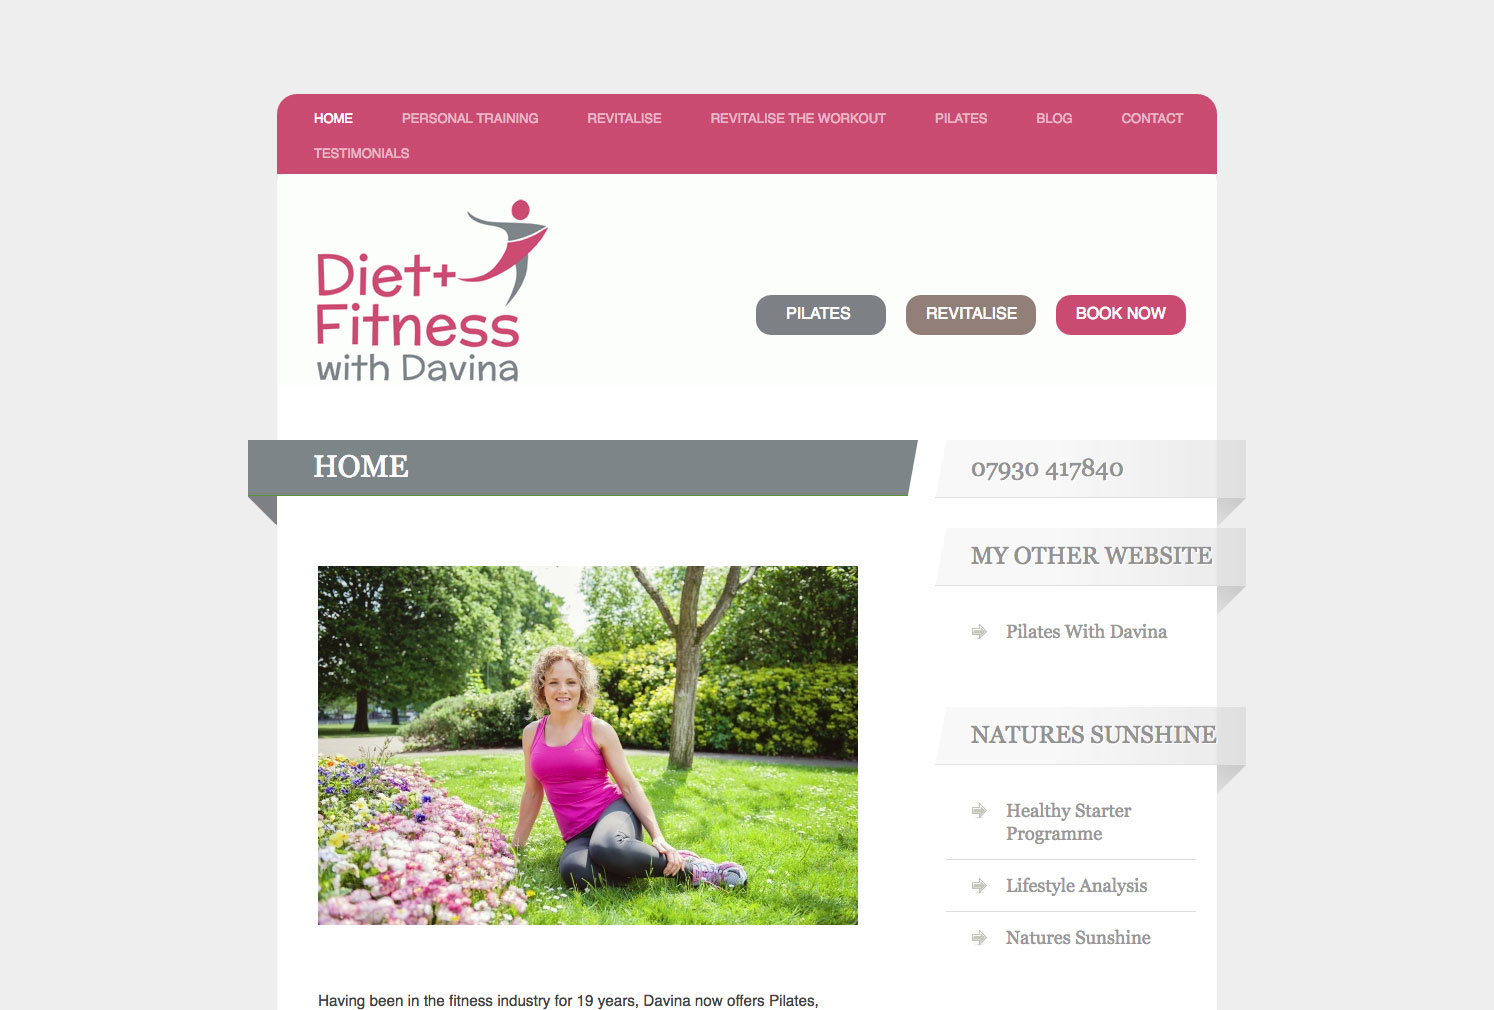 Diet and Fitness with Davina website redesign